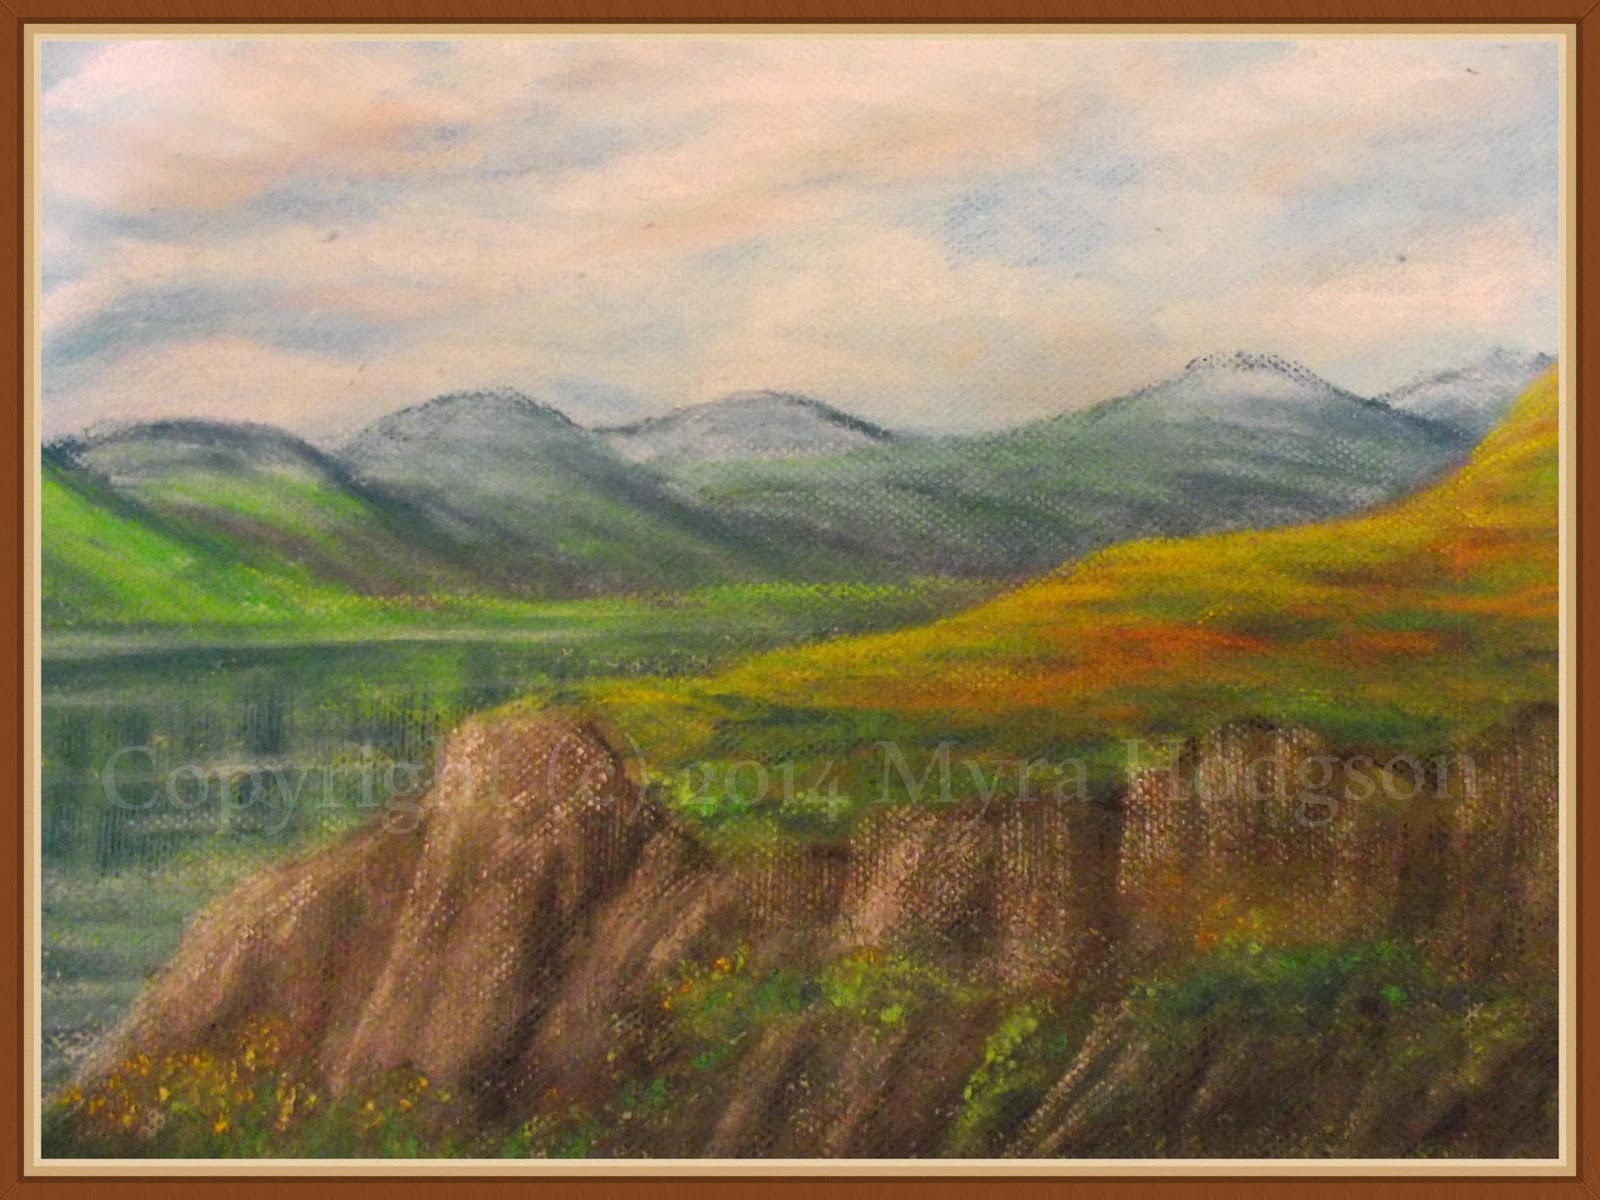 Painting the landscape - experimenting with pastels again!